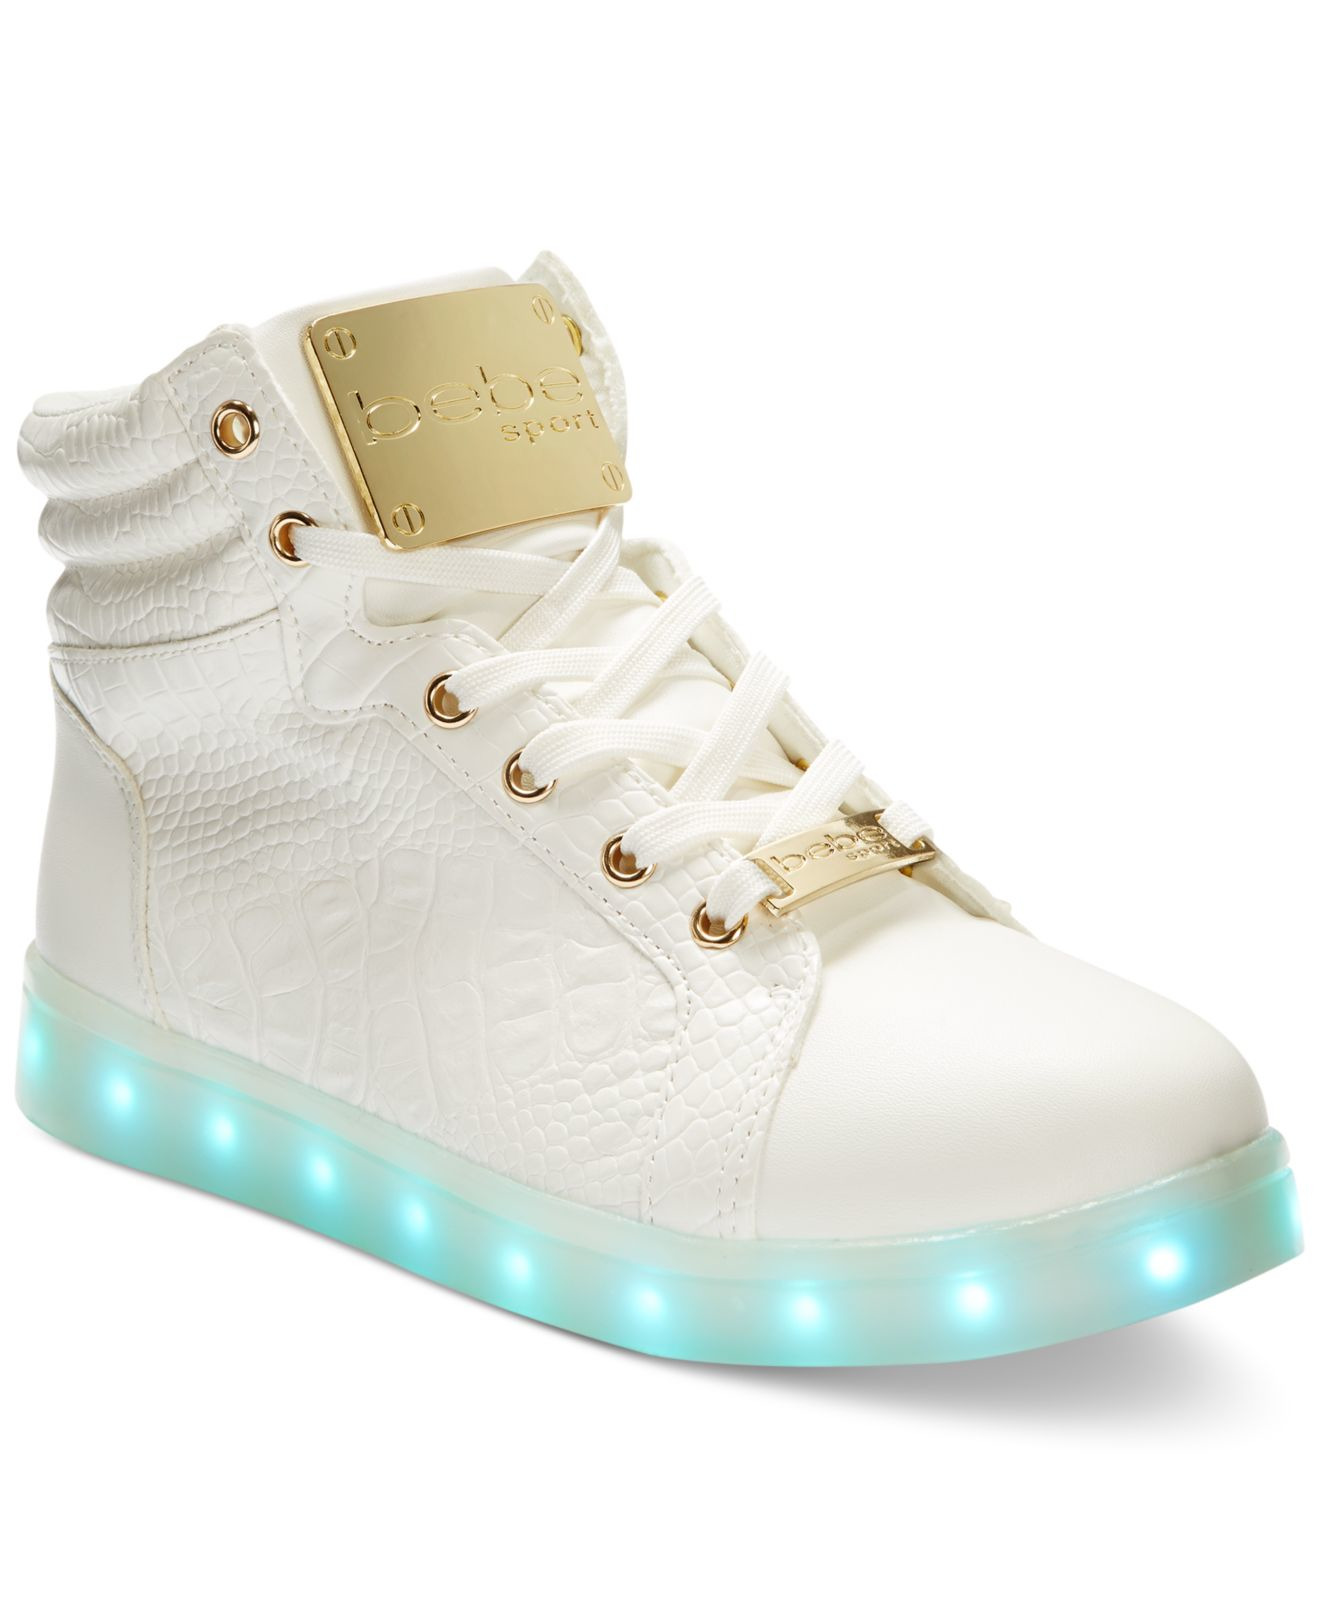 Moonwalkers Light Shoes